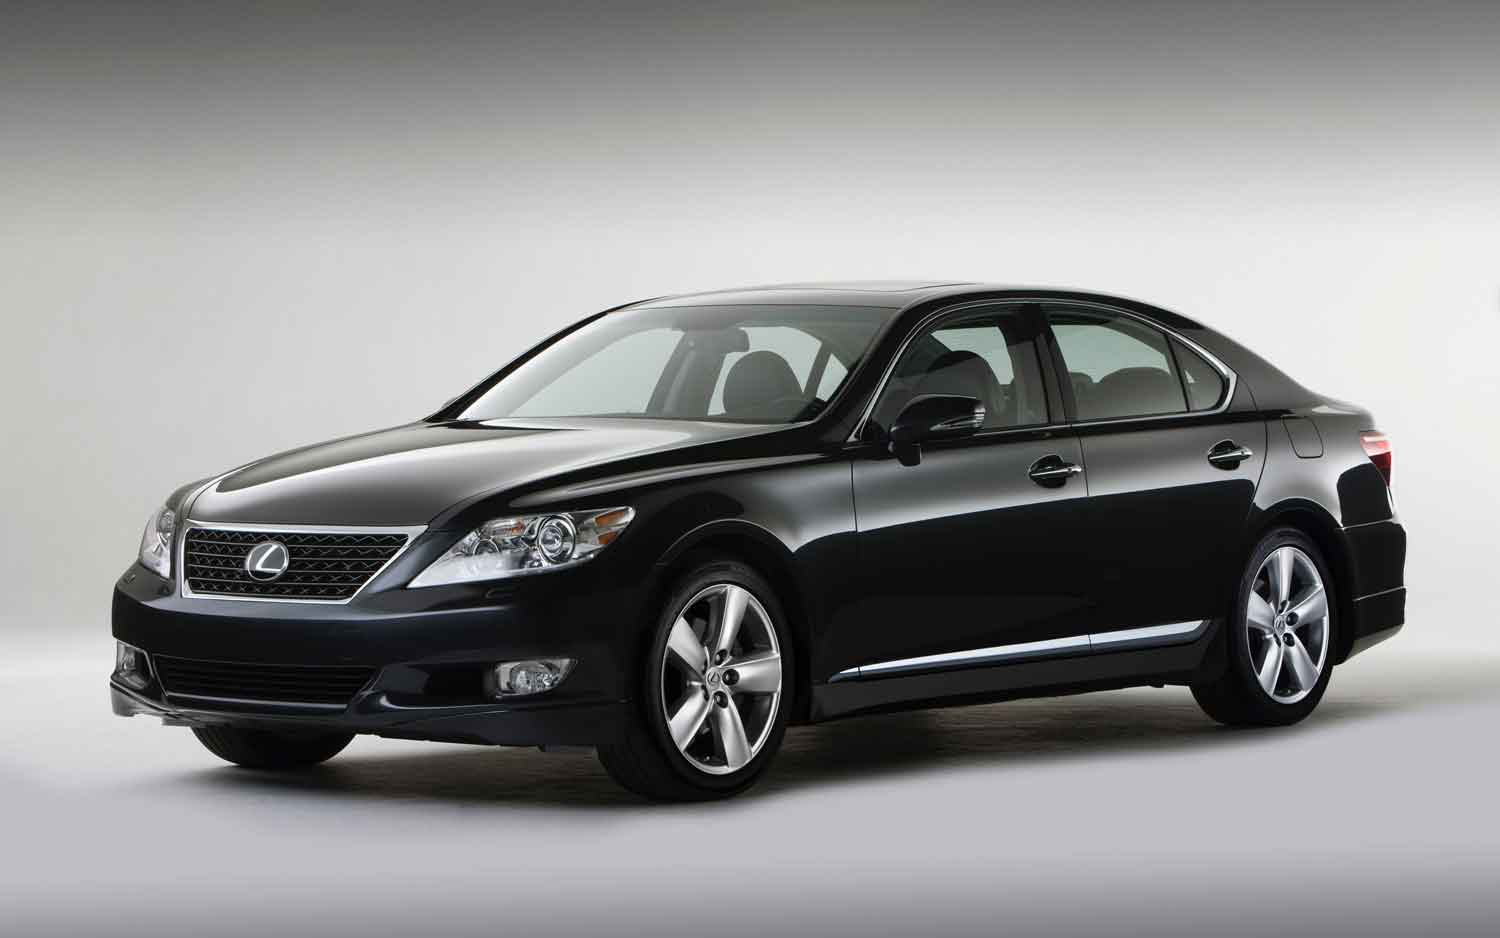 Lexus LS 460 2012 photo - 7